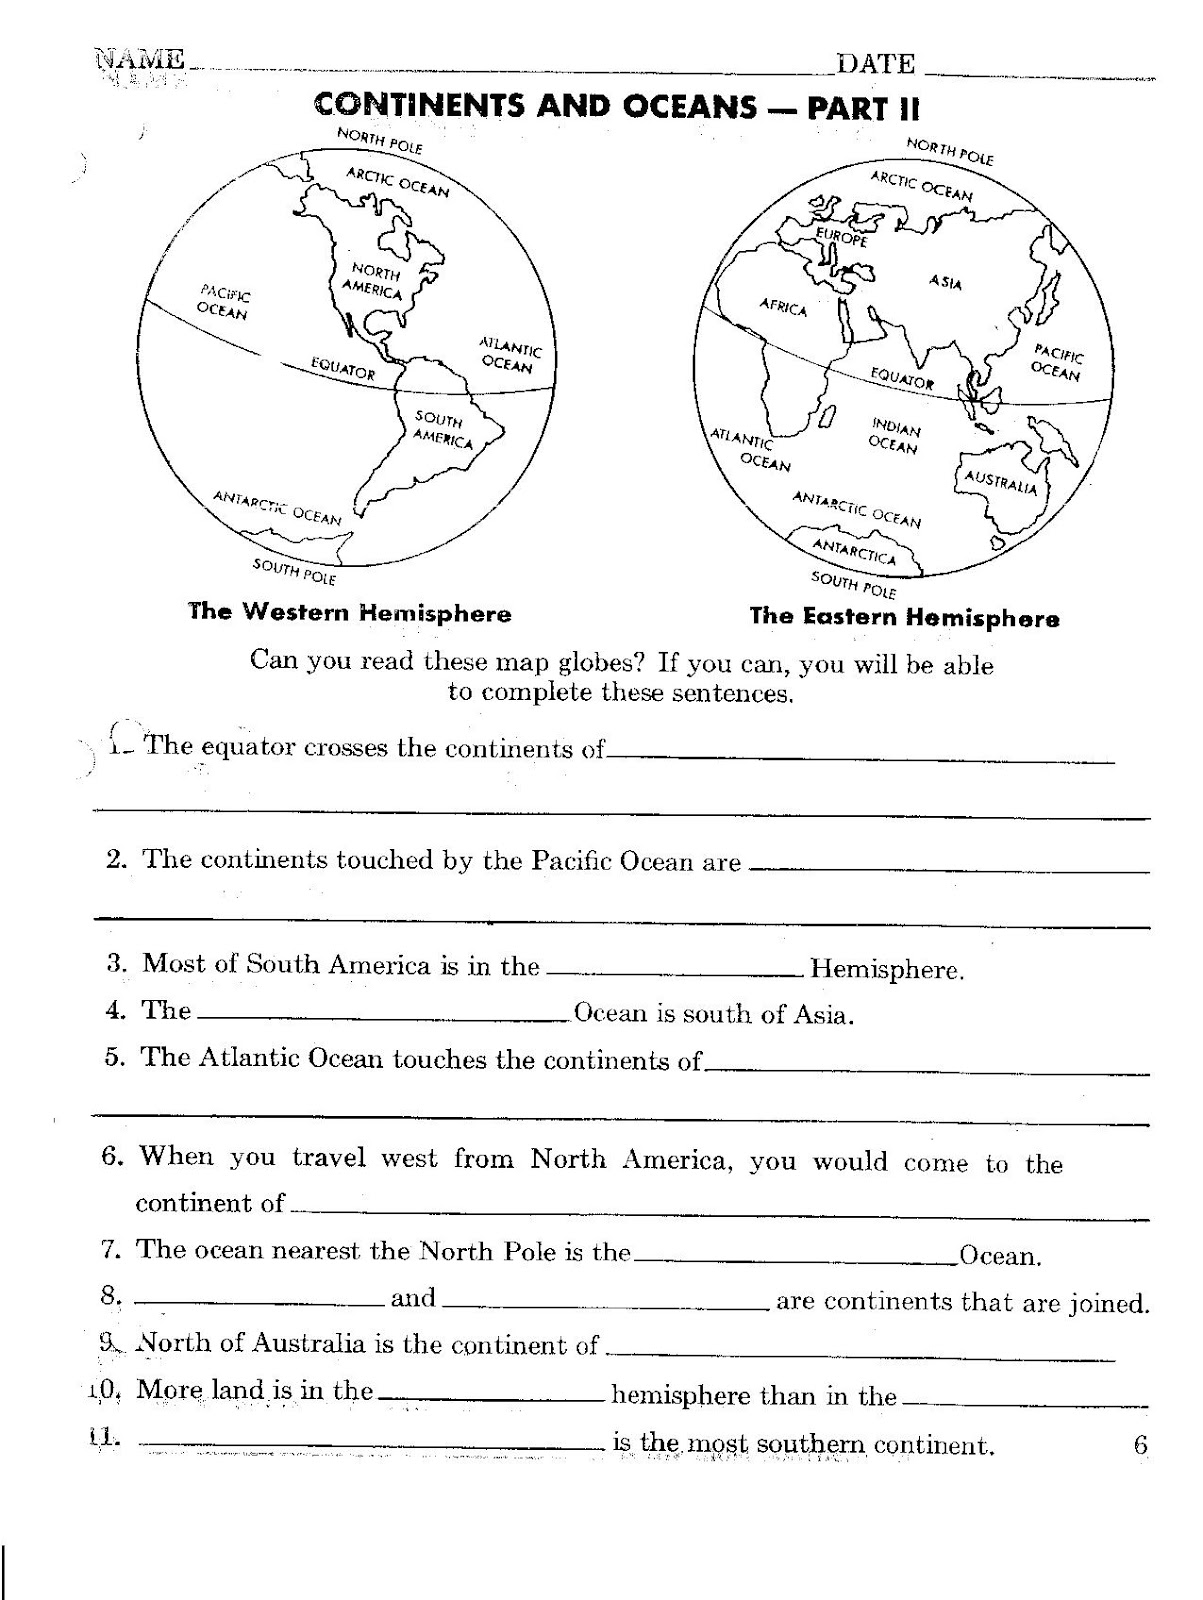 Printables Continents And Oceans Quiz Worksheet